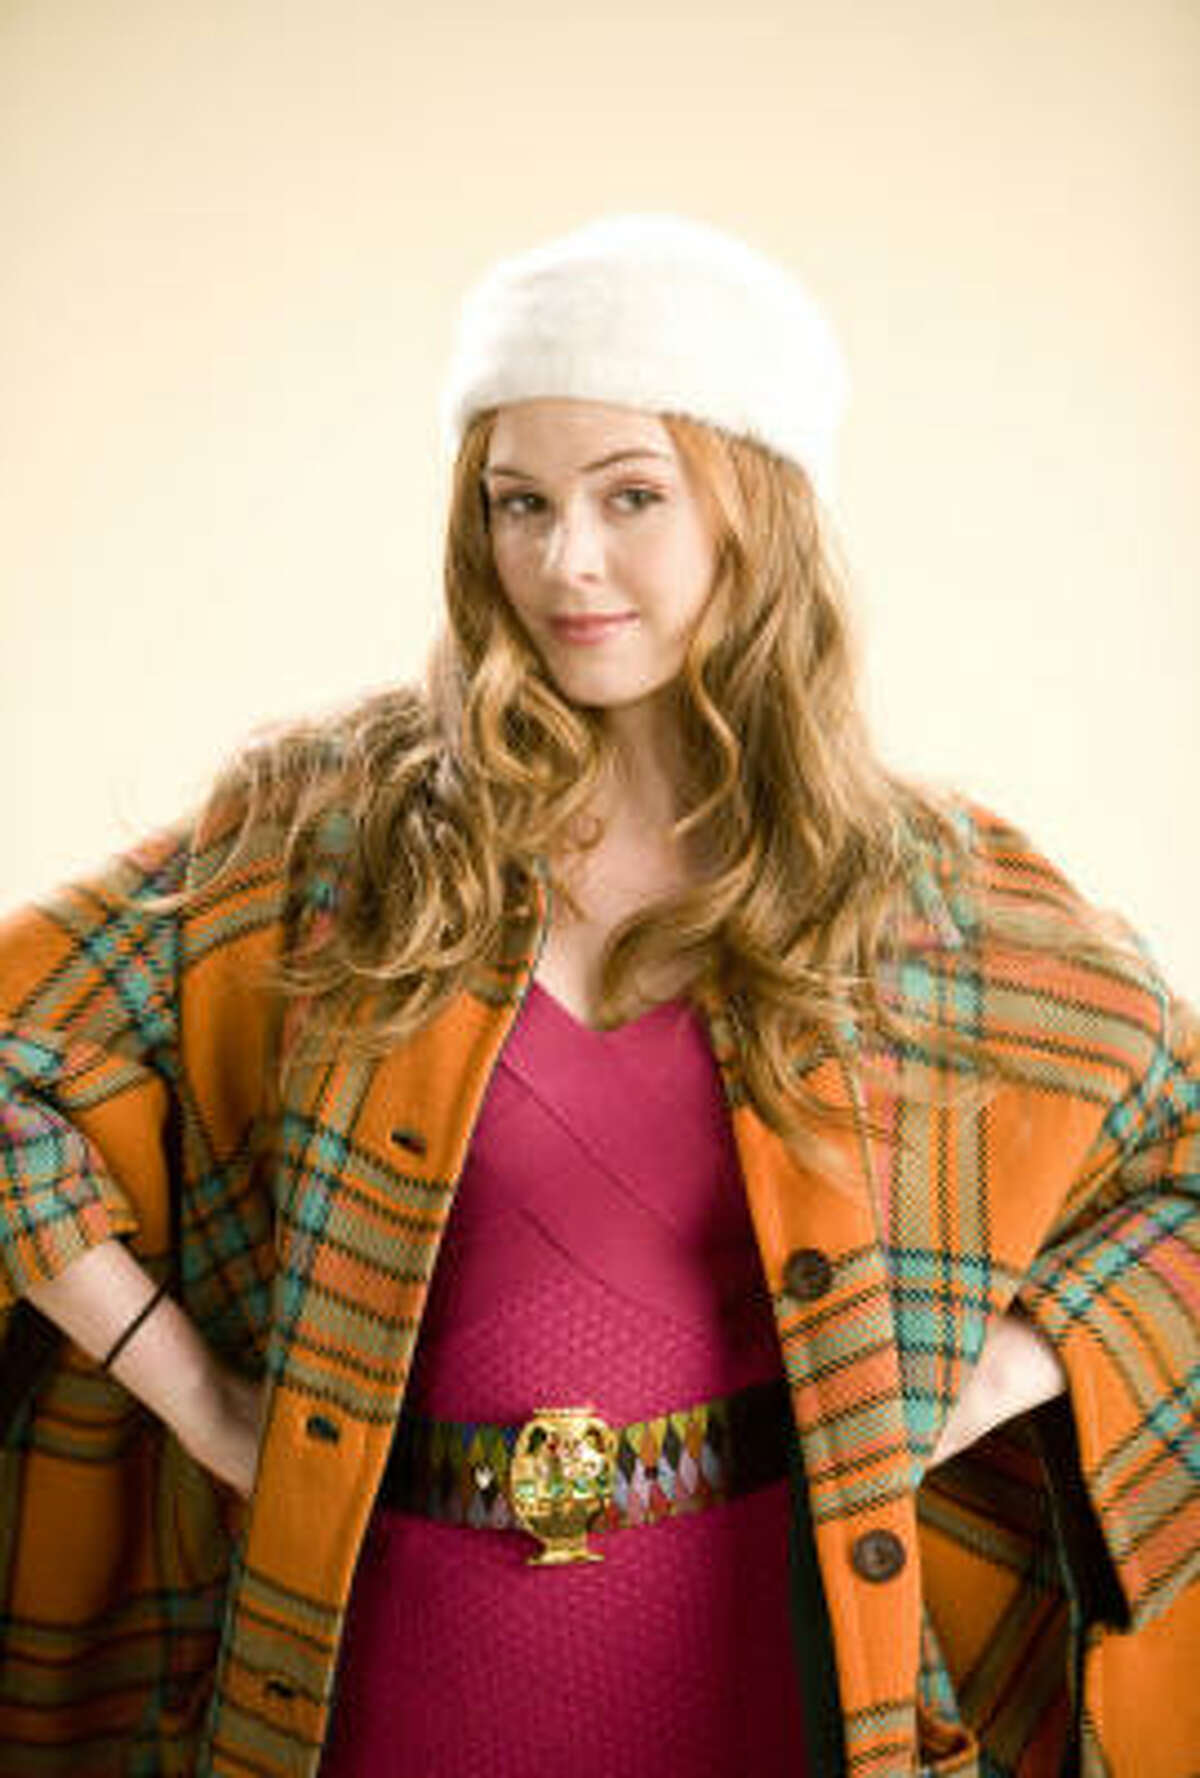 Costume designer Patricia Field created the stylish outfits for Isla Fisher in Confessions of a Shopaholic.